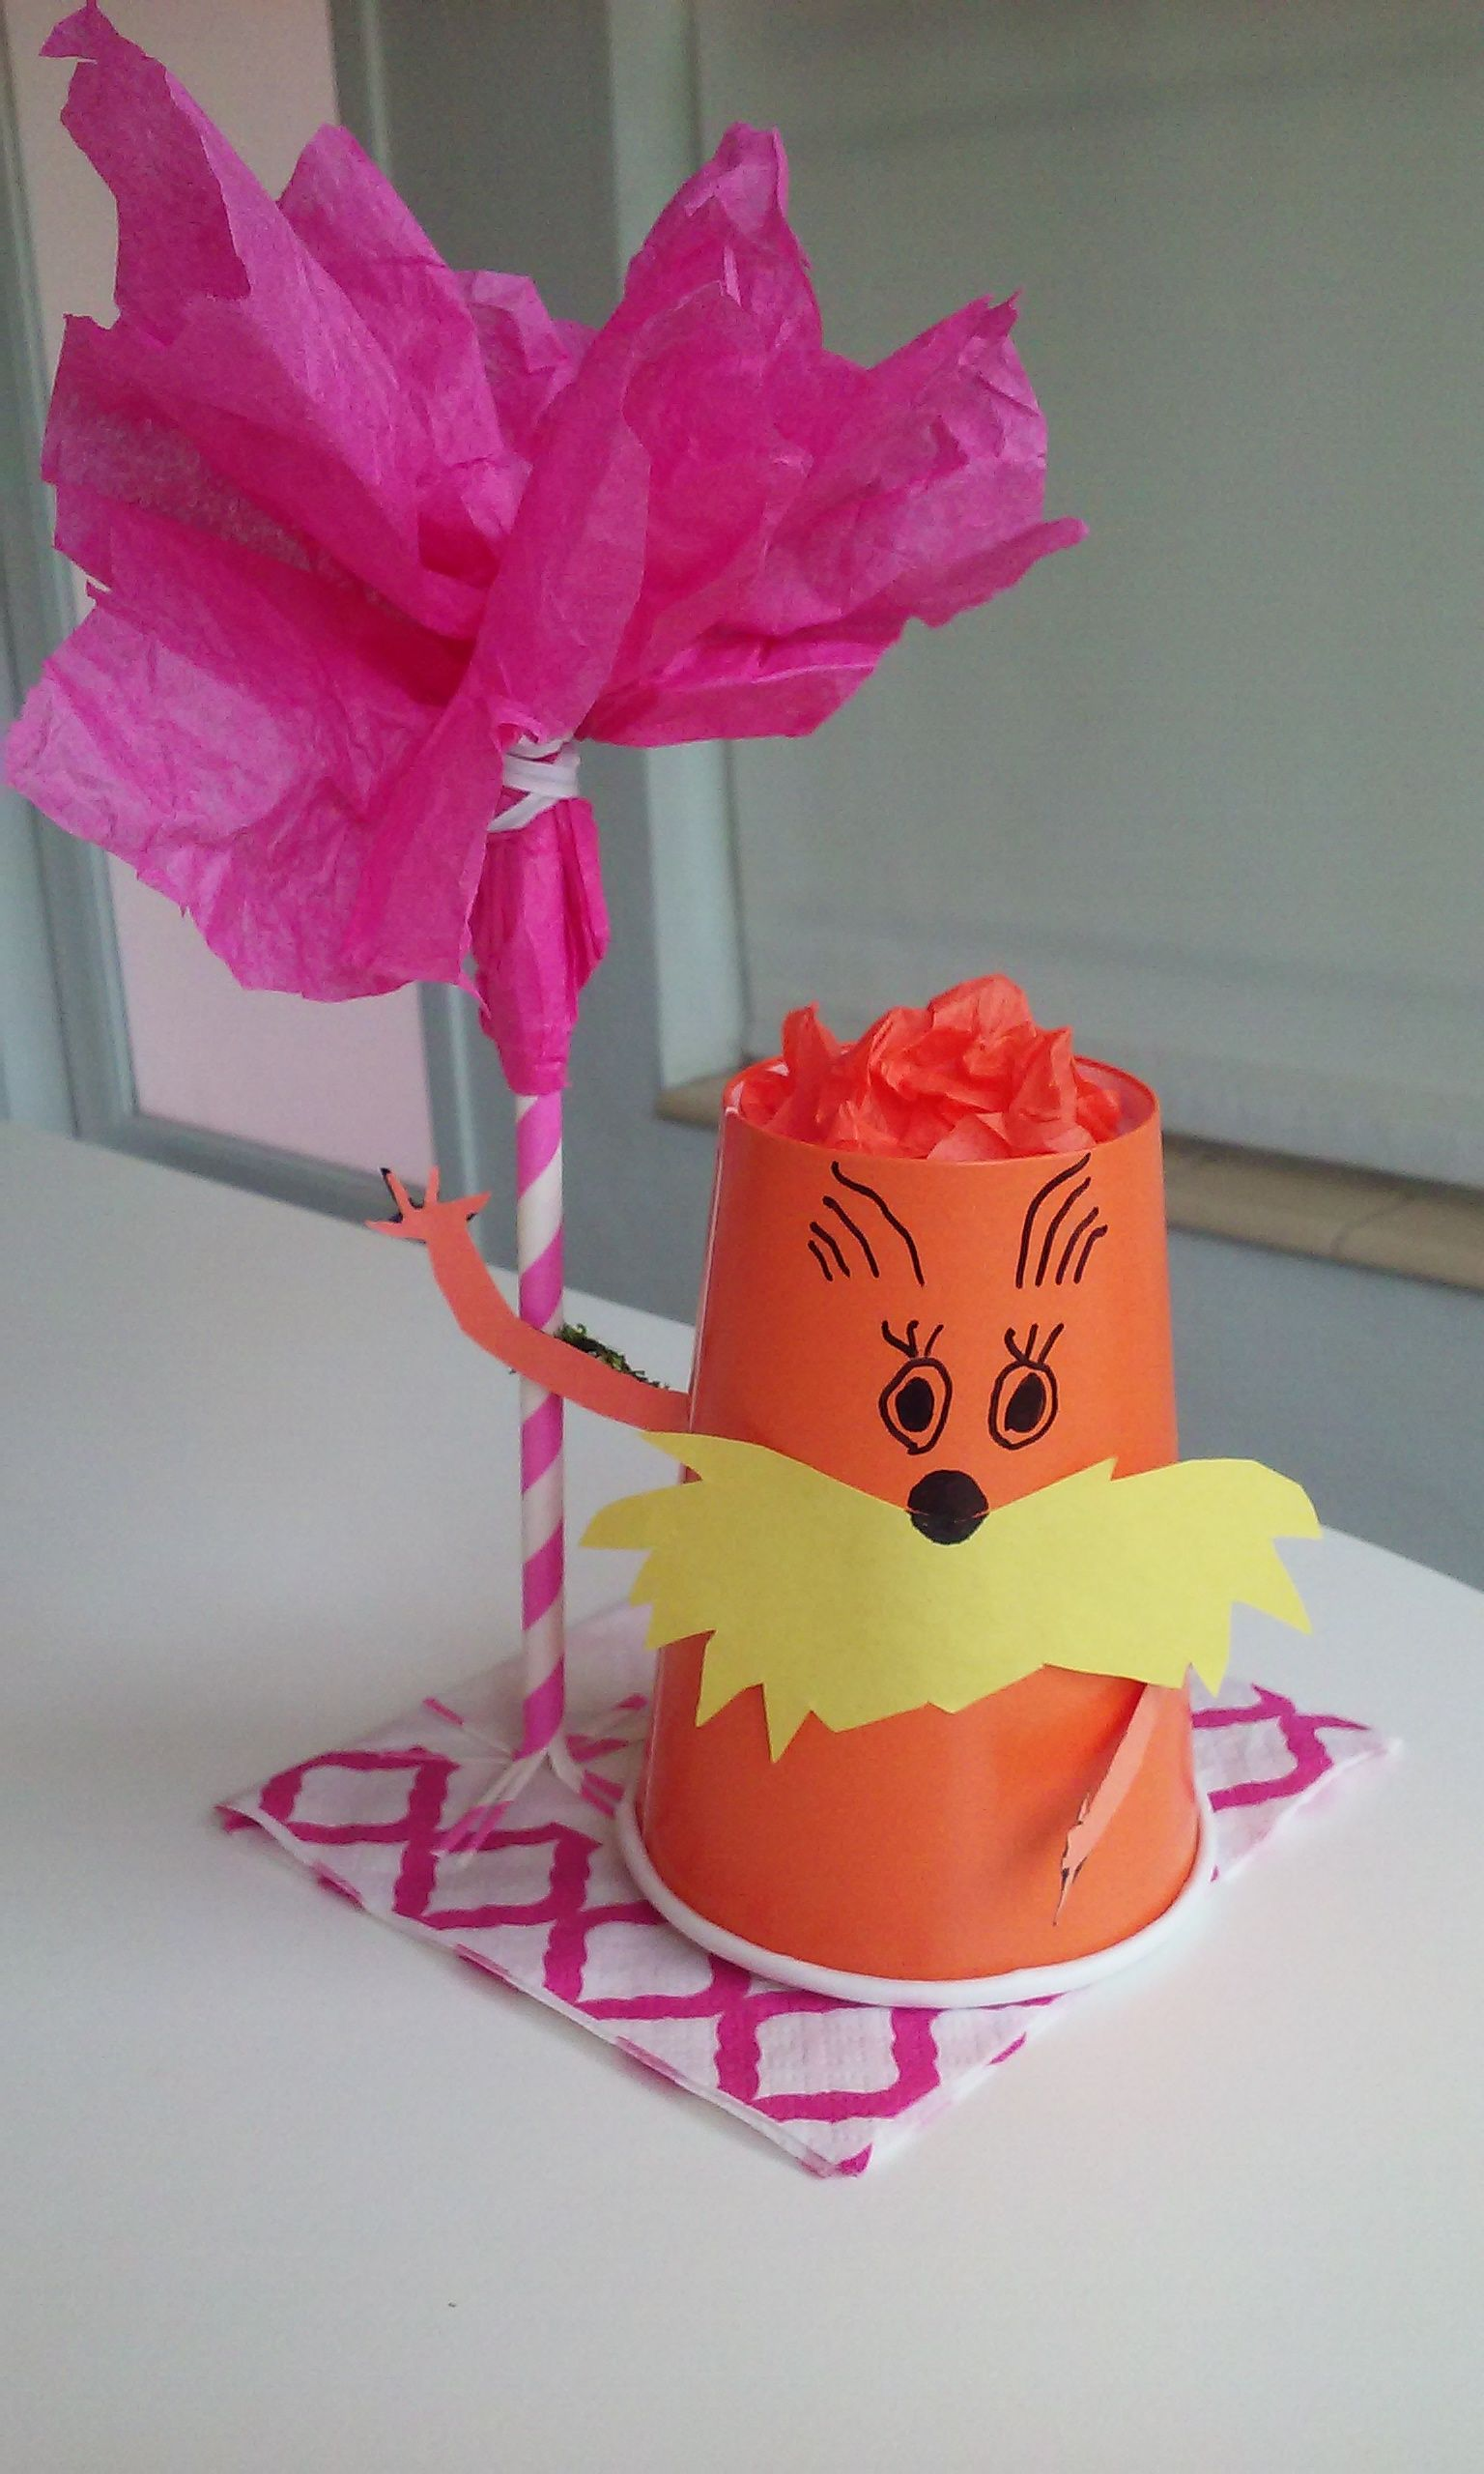 Lorax and Truffula tree paper craft for kids and for baby shower made from paper cup and straw.